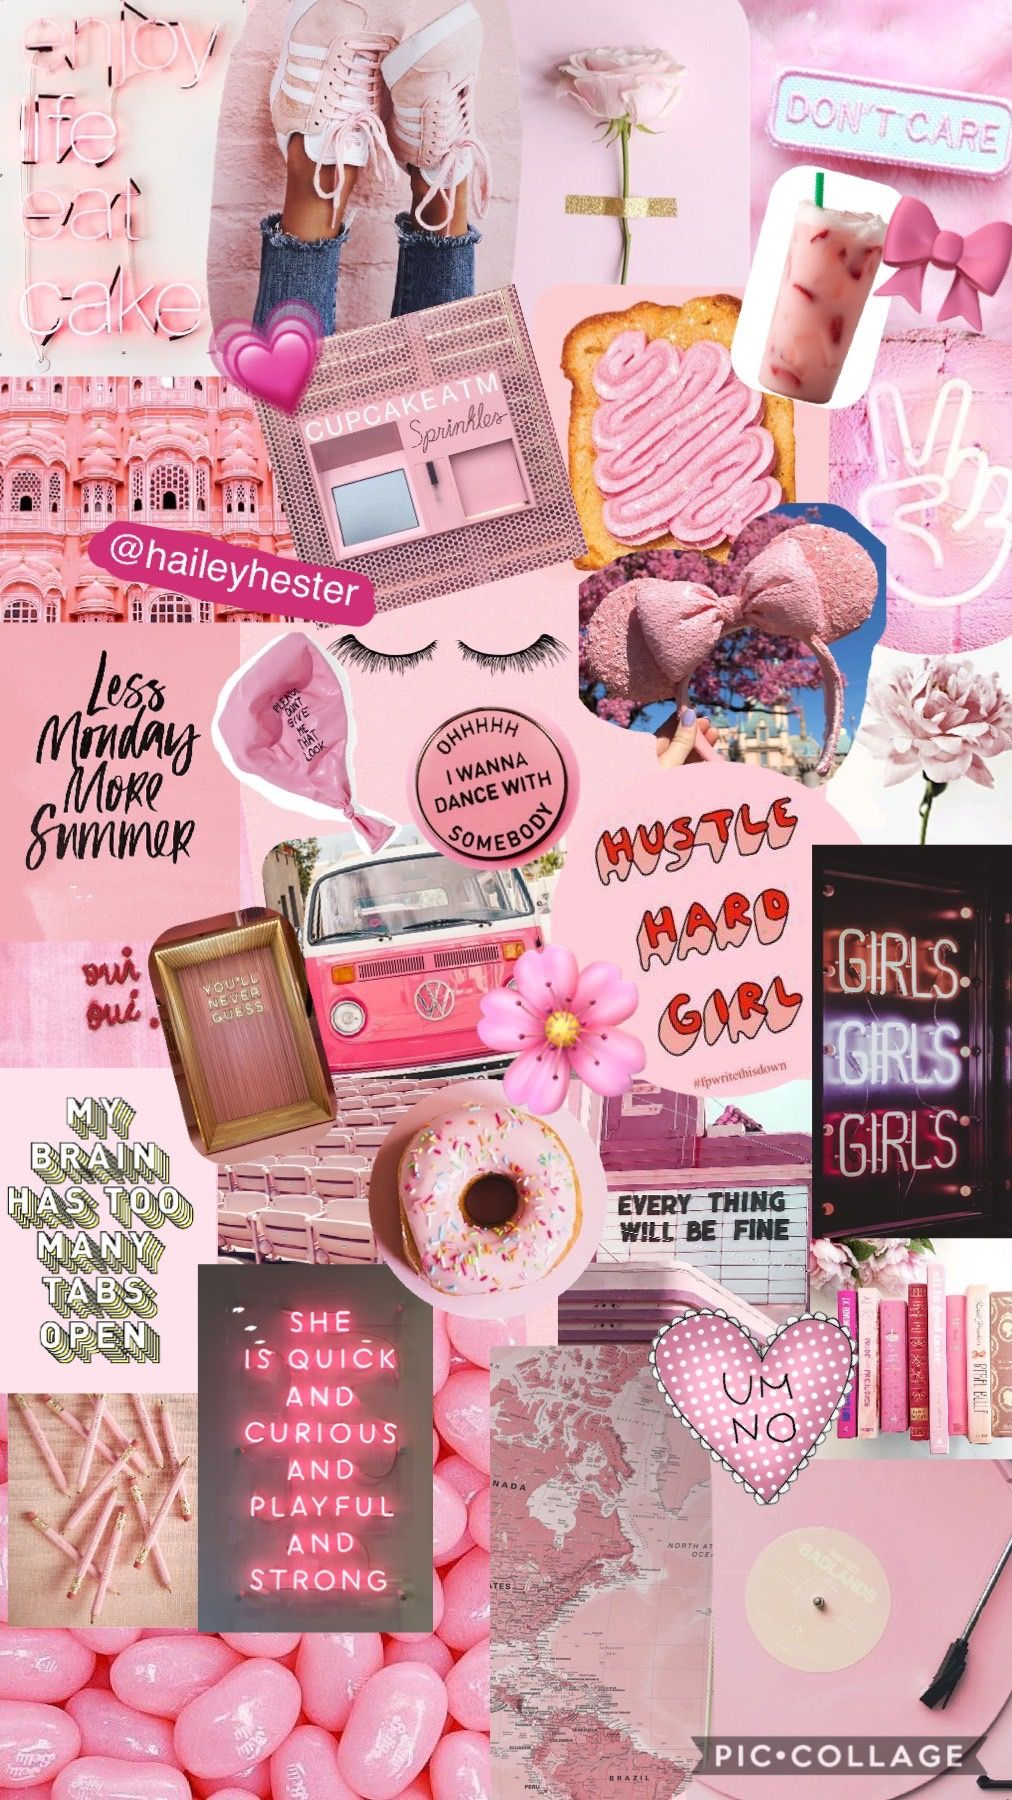 Pink Aesthetic Wallpaper🌸🎀💗 Follow me sheisloved_37